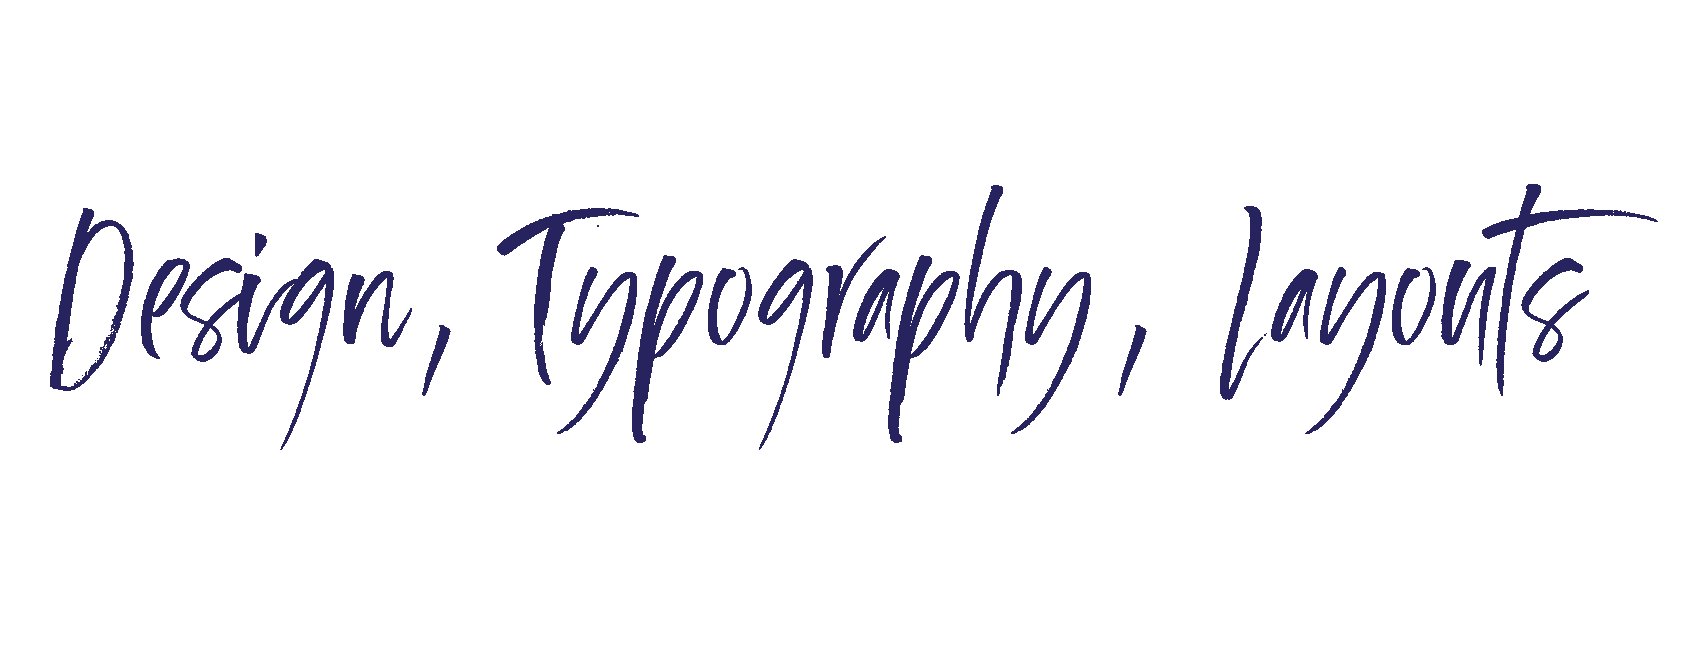 Portfolio_Design Typography Layouts.png